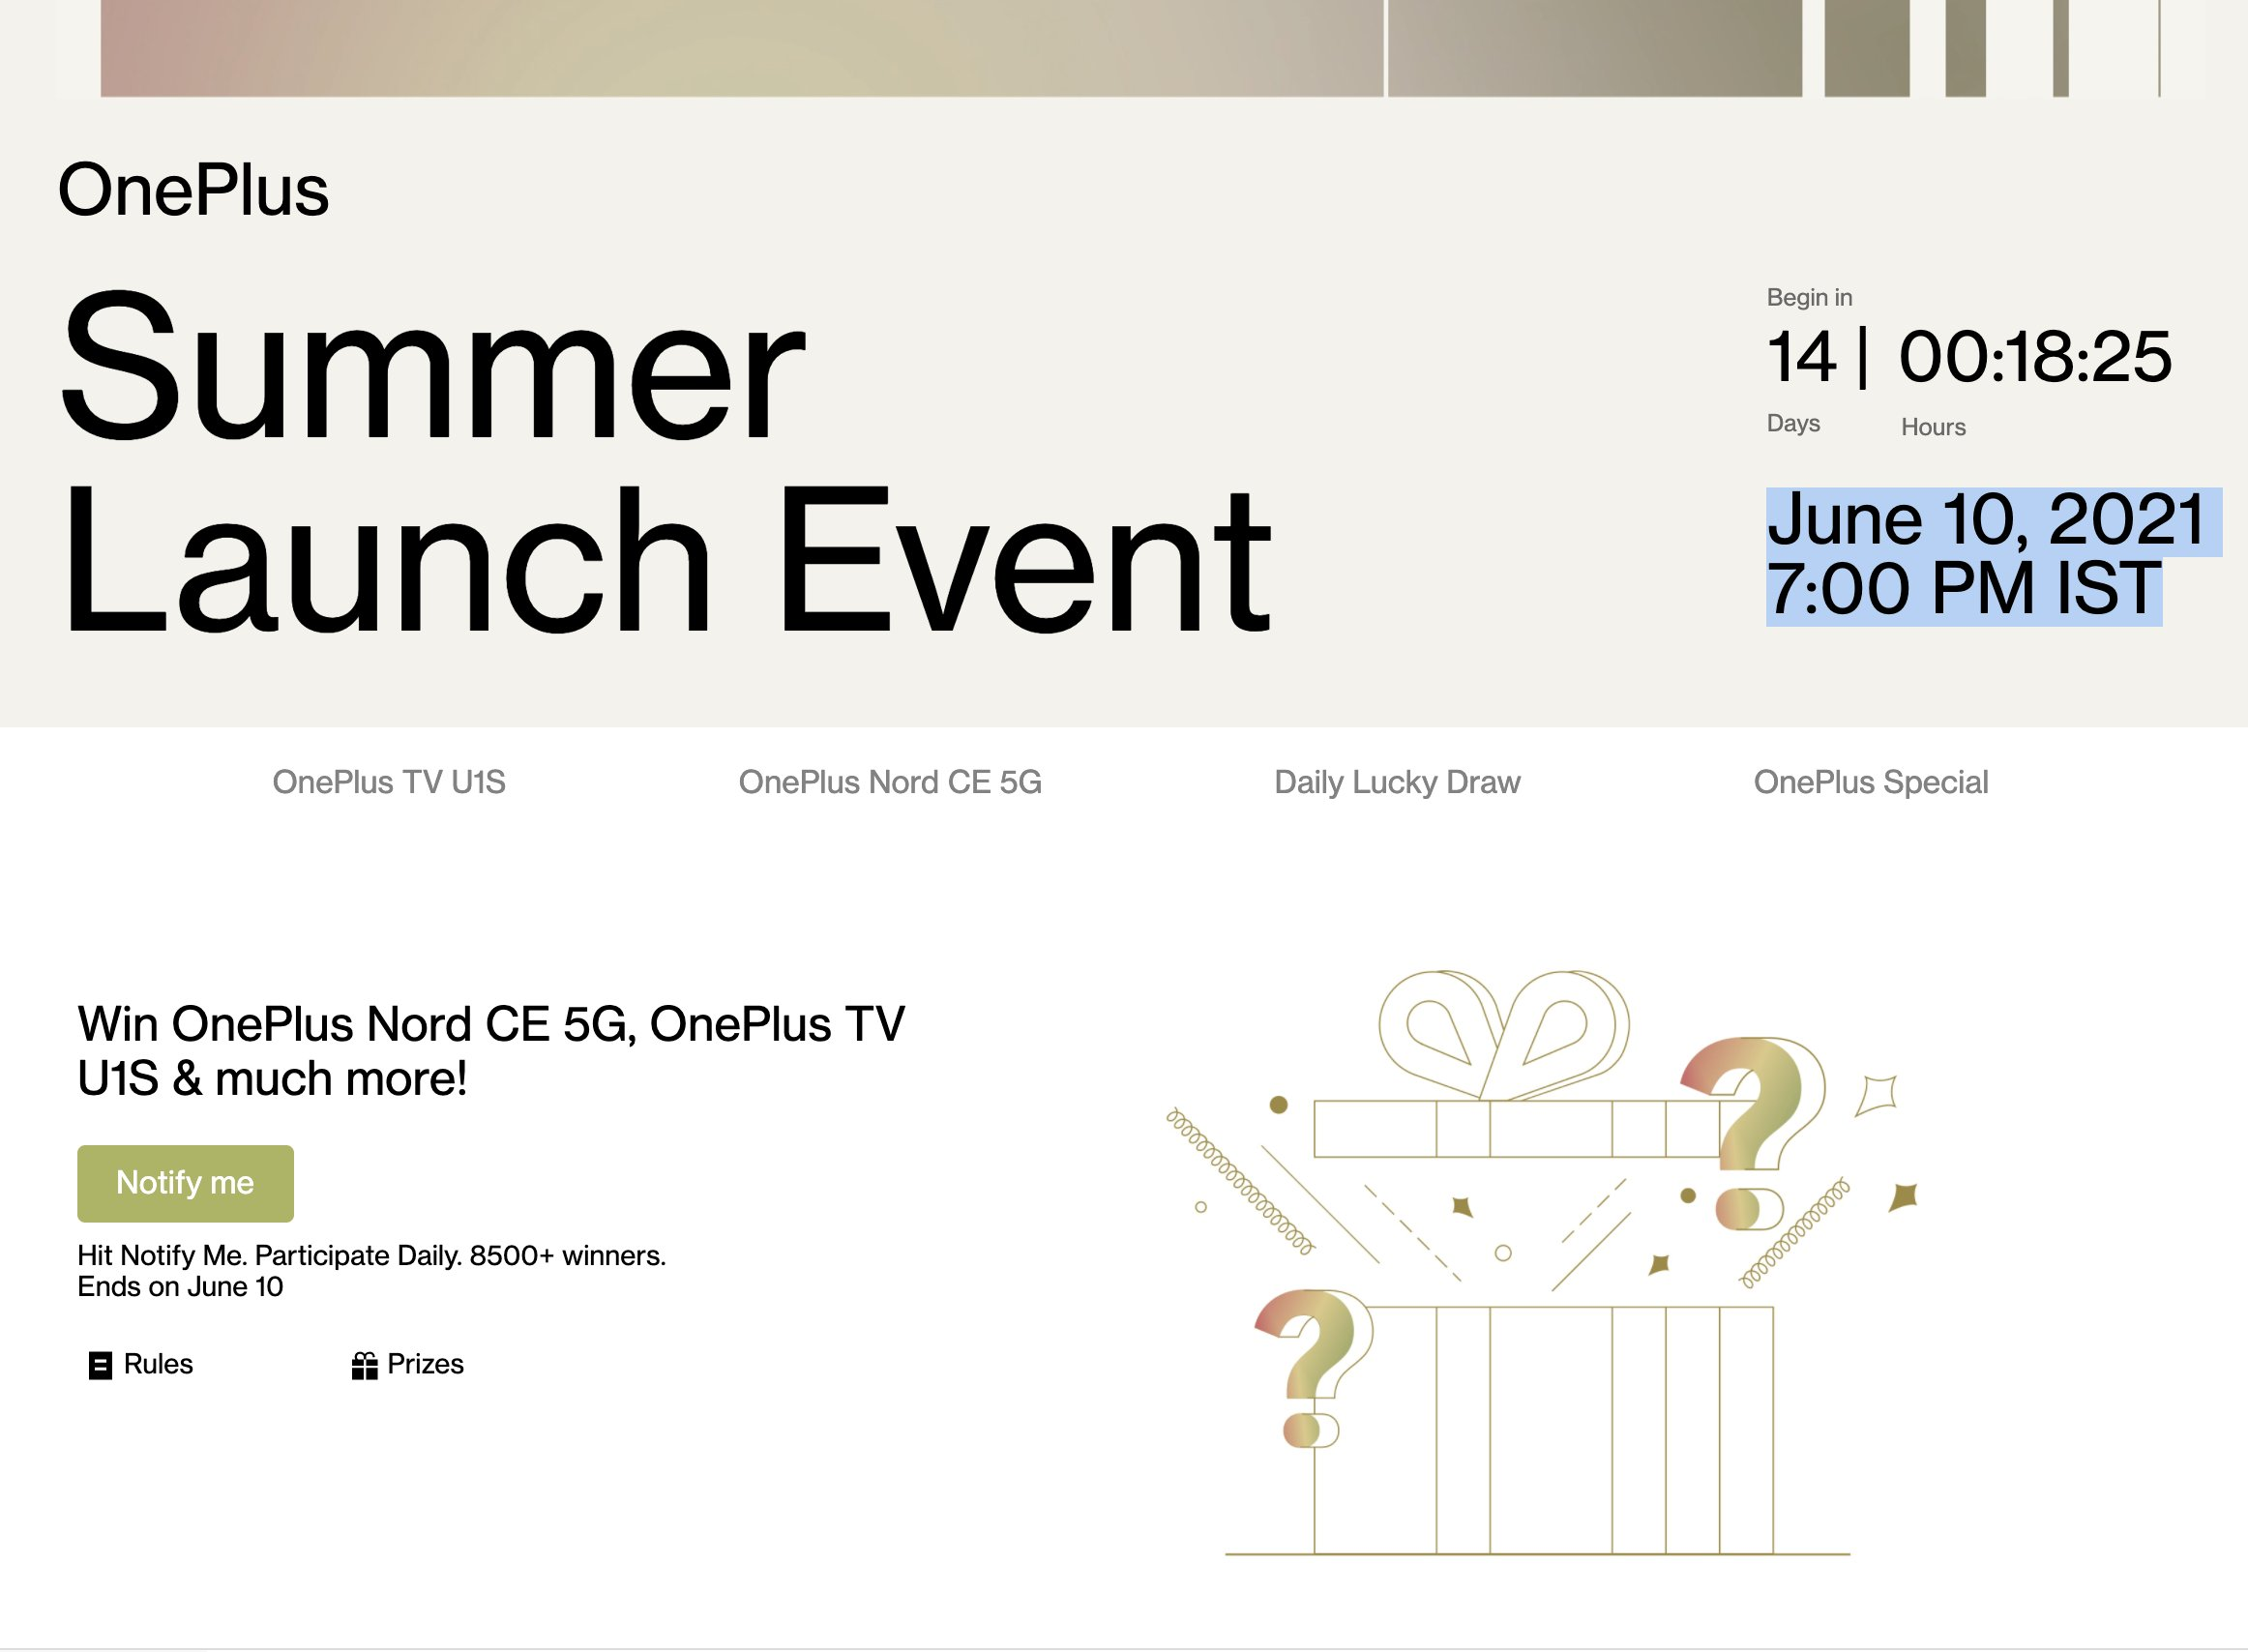 OnePlus Summer Launch Event For OnePlus Nord CE Launch